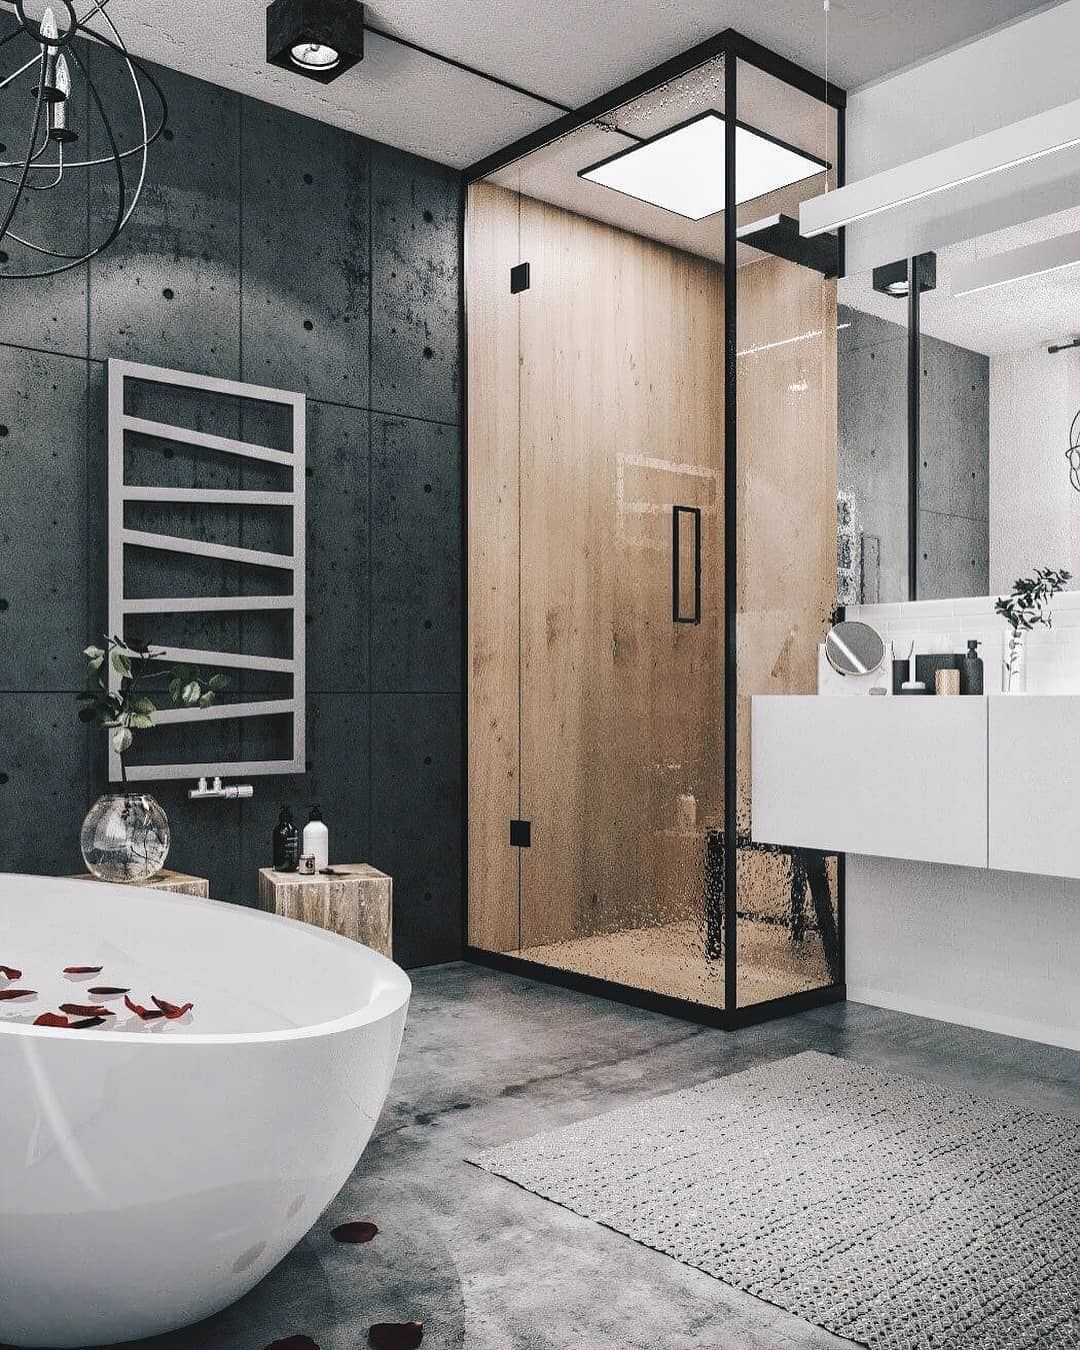 Who Would Live Here Let Us Know In The Comments Below Modern Loft Designed B Loft Interior Design Industrial Bathroom Design Industrial Bathroom Decor Latest style bathroom below